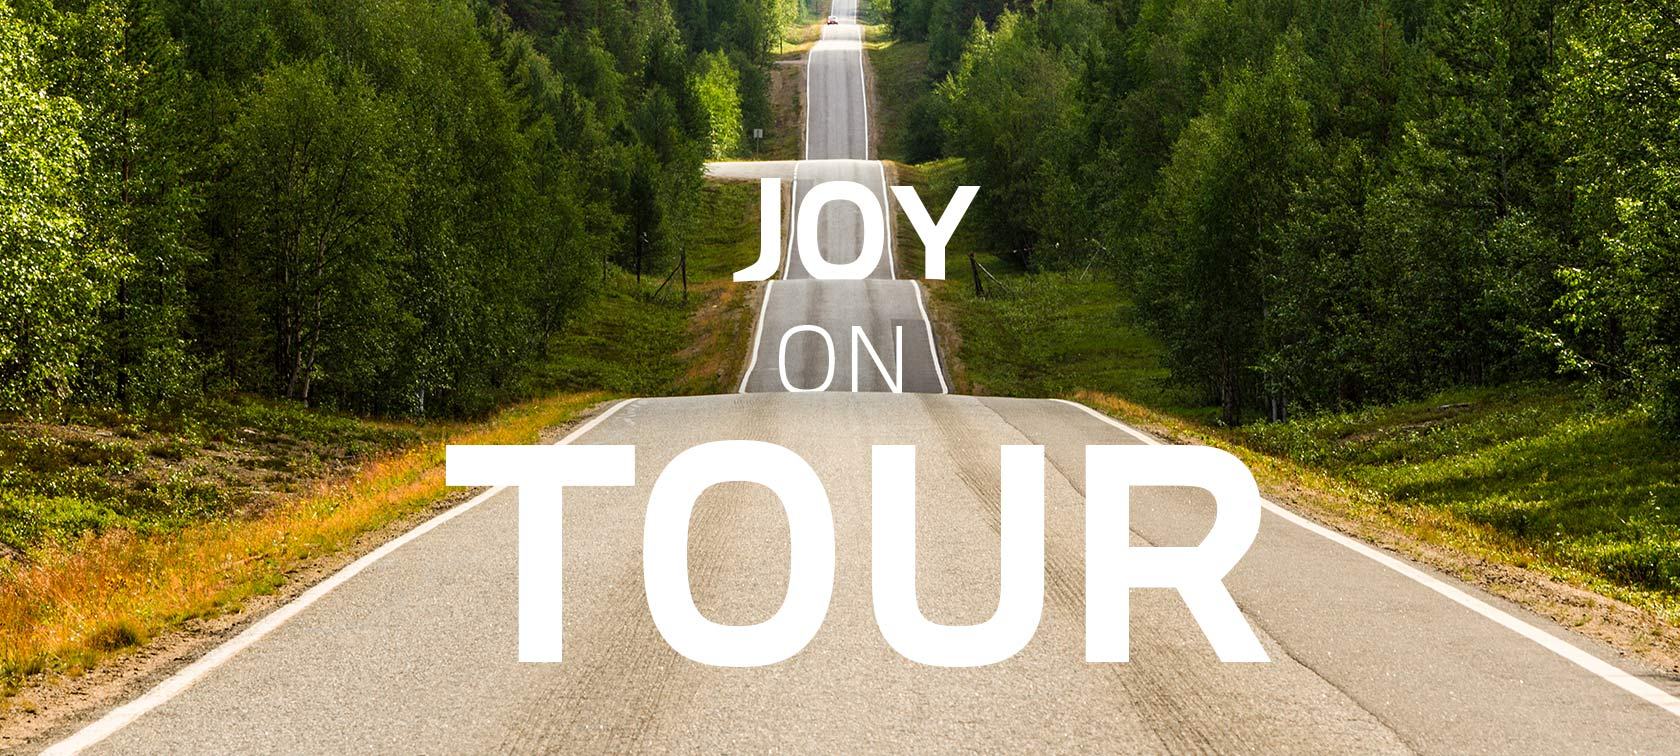 BMW Joy On Tour